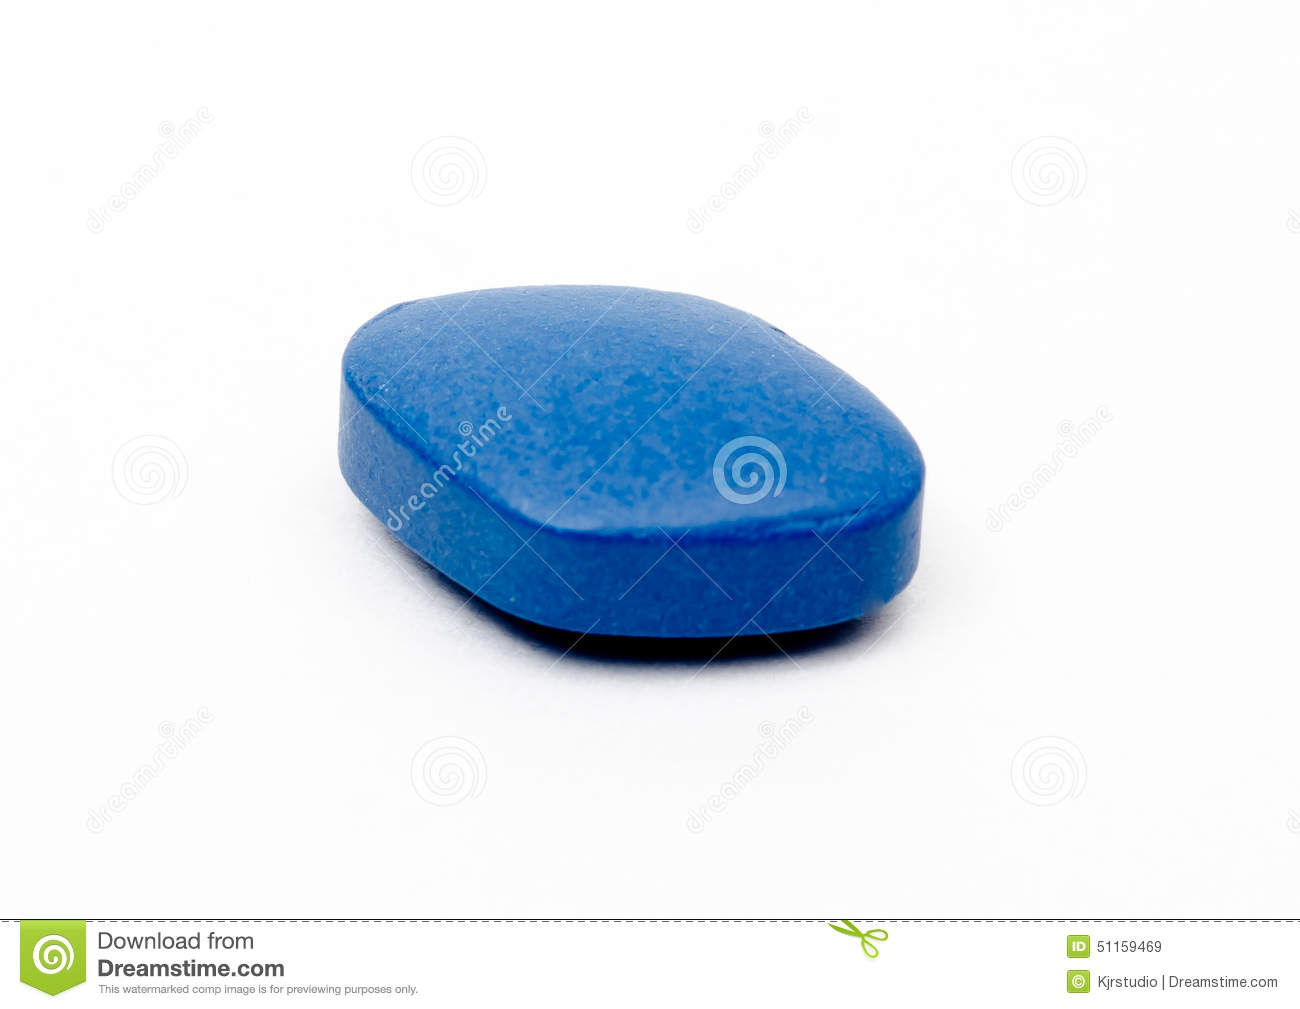 Viagra pills look like